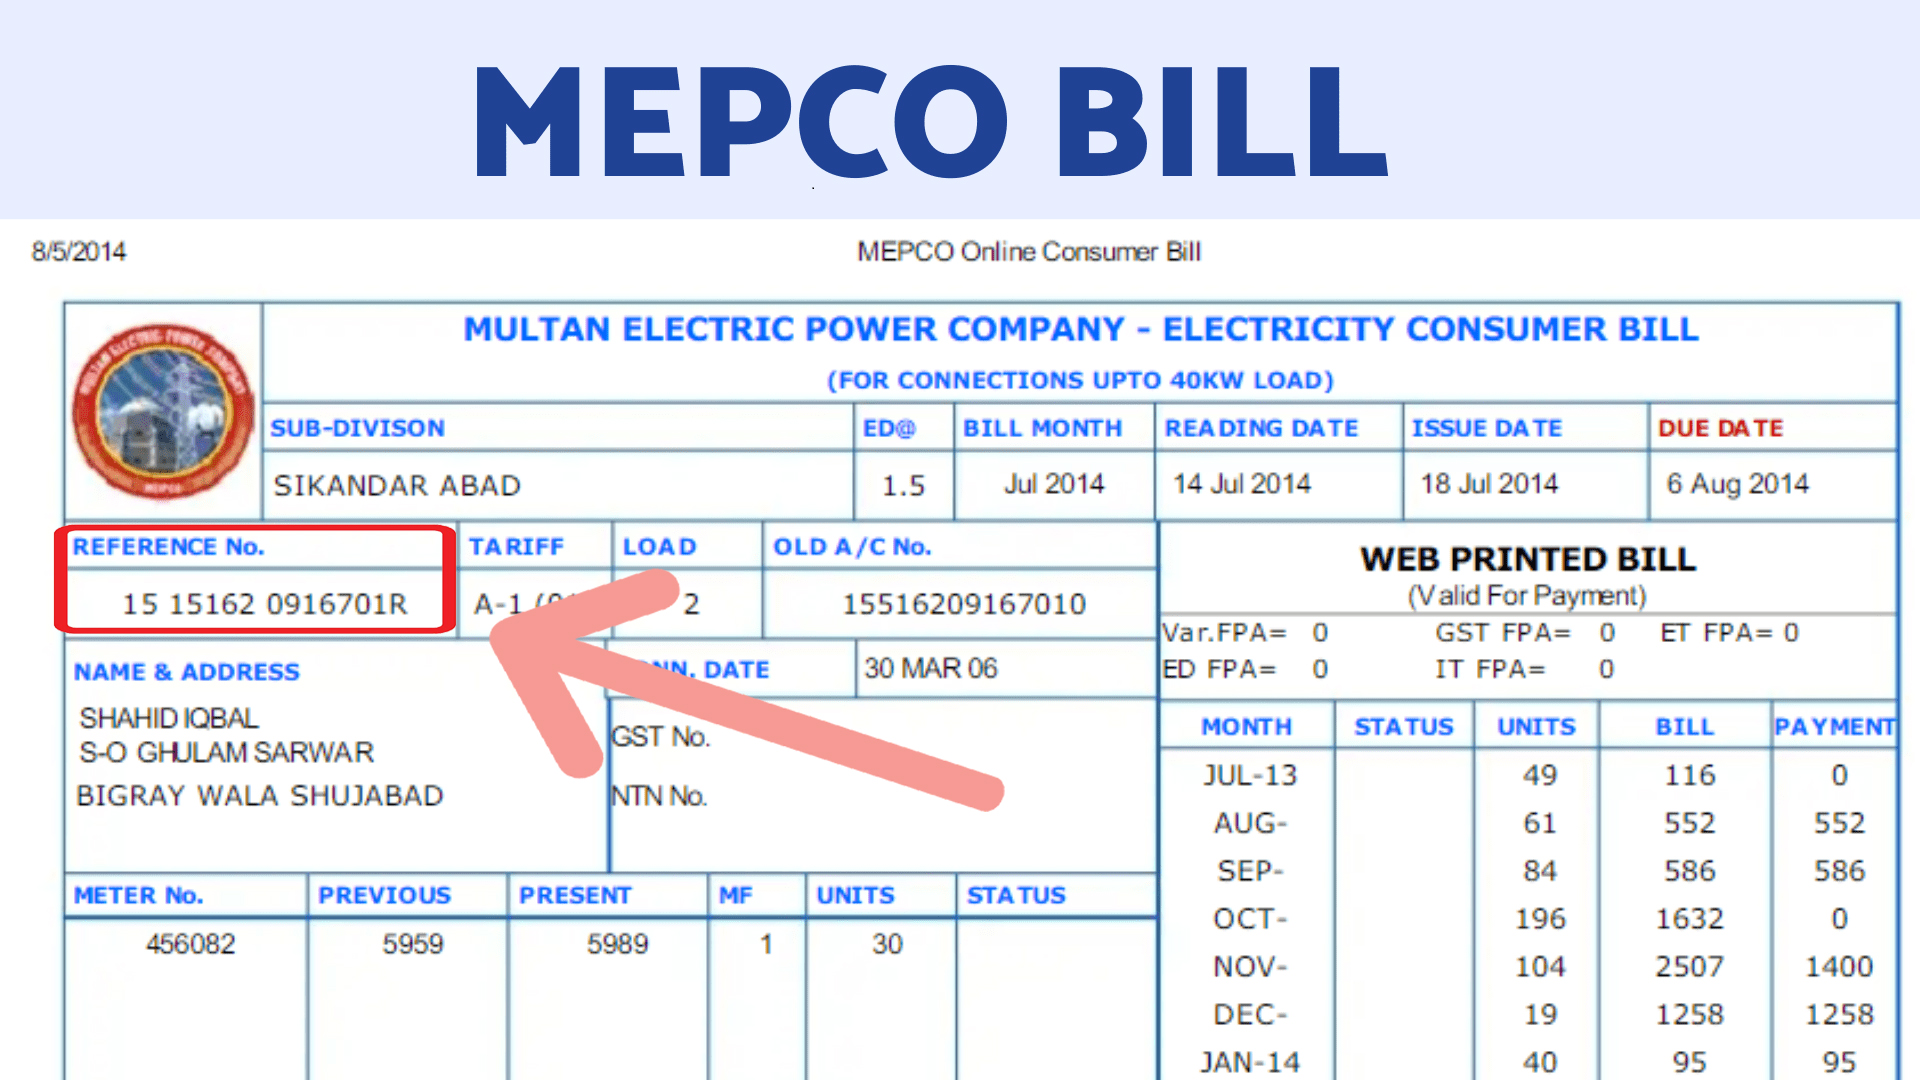 mepco Reference Number